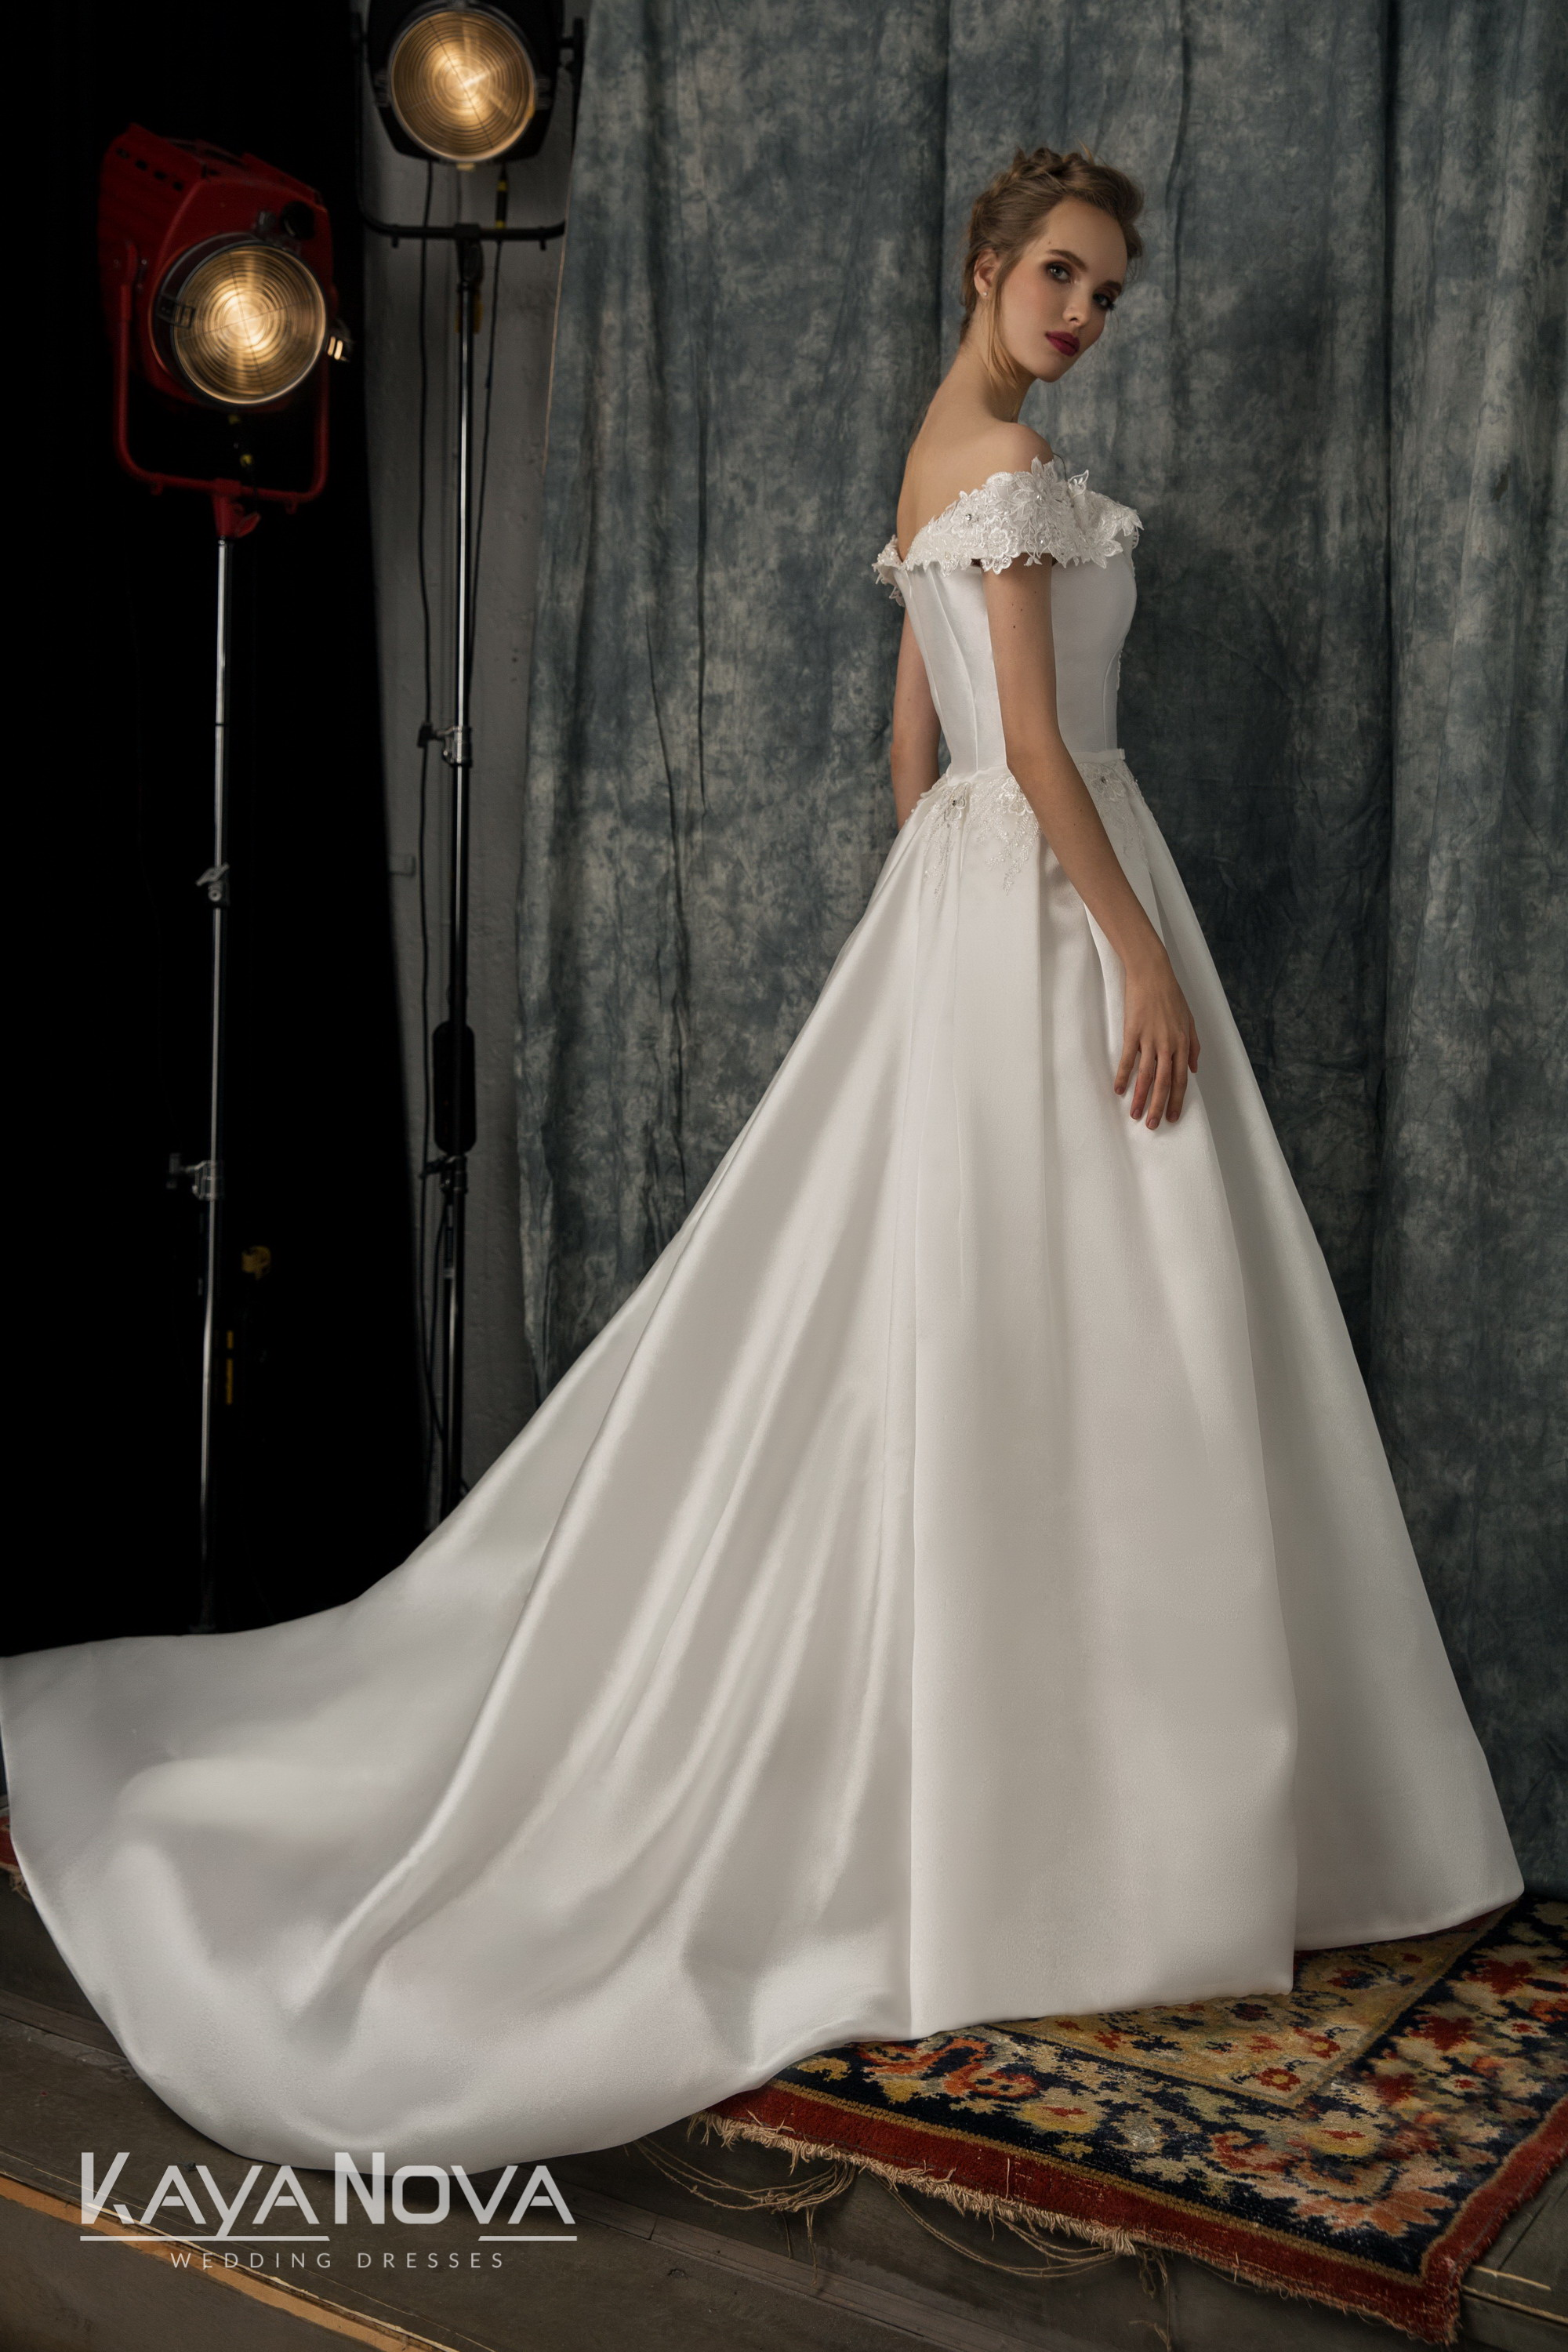 https://kayawedding.com/images/stories/virtuemart/product/Hasey 2.jpg